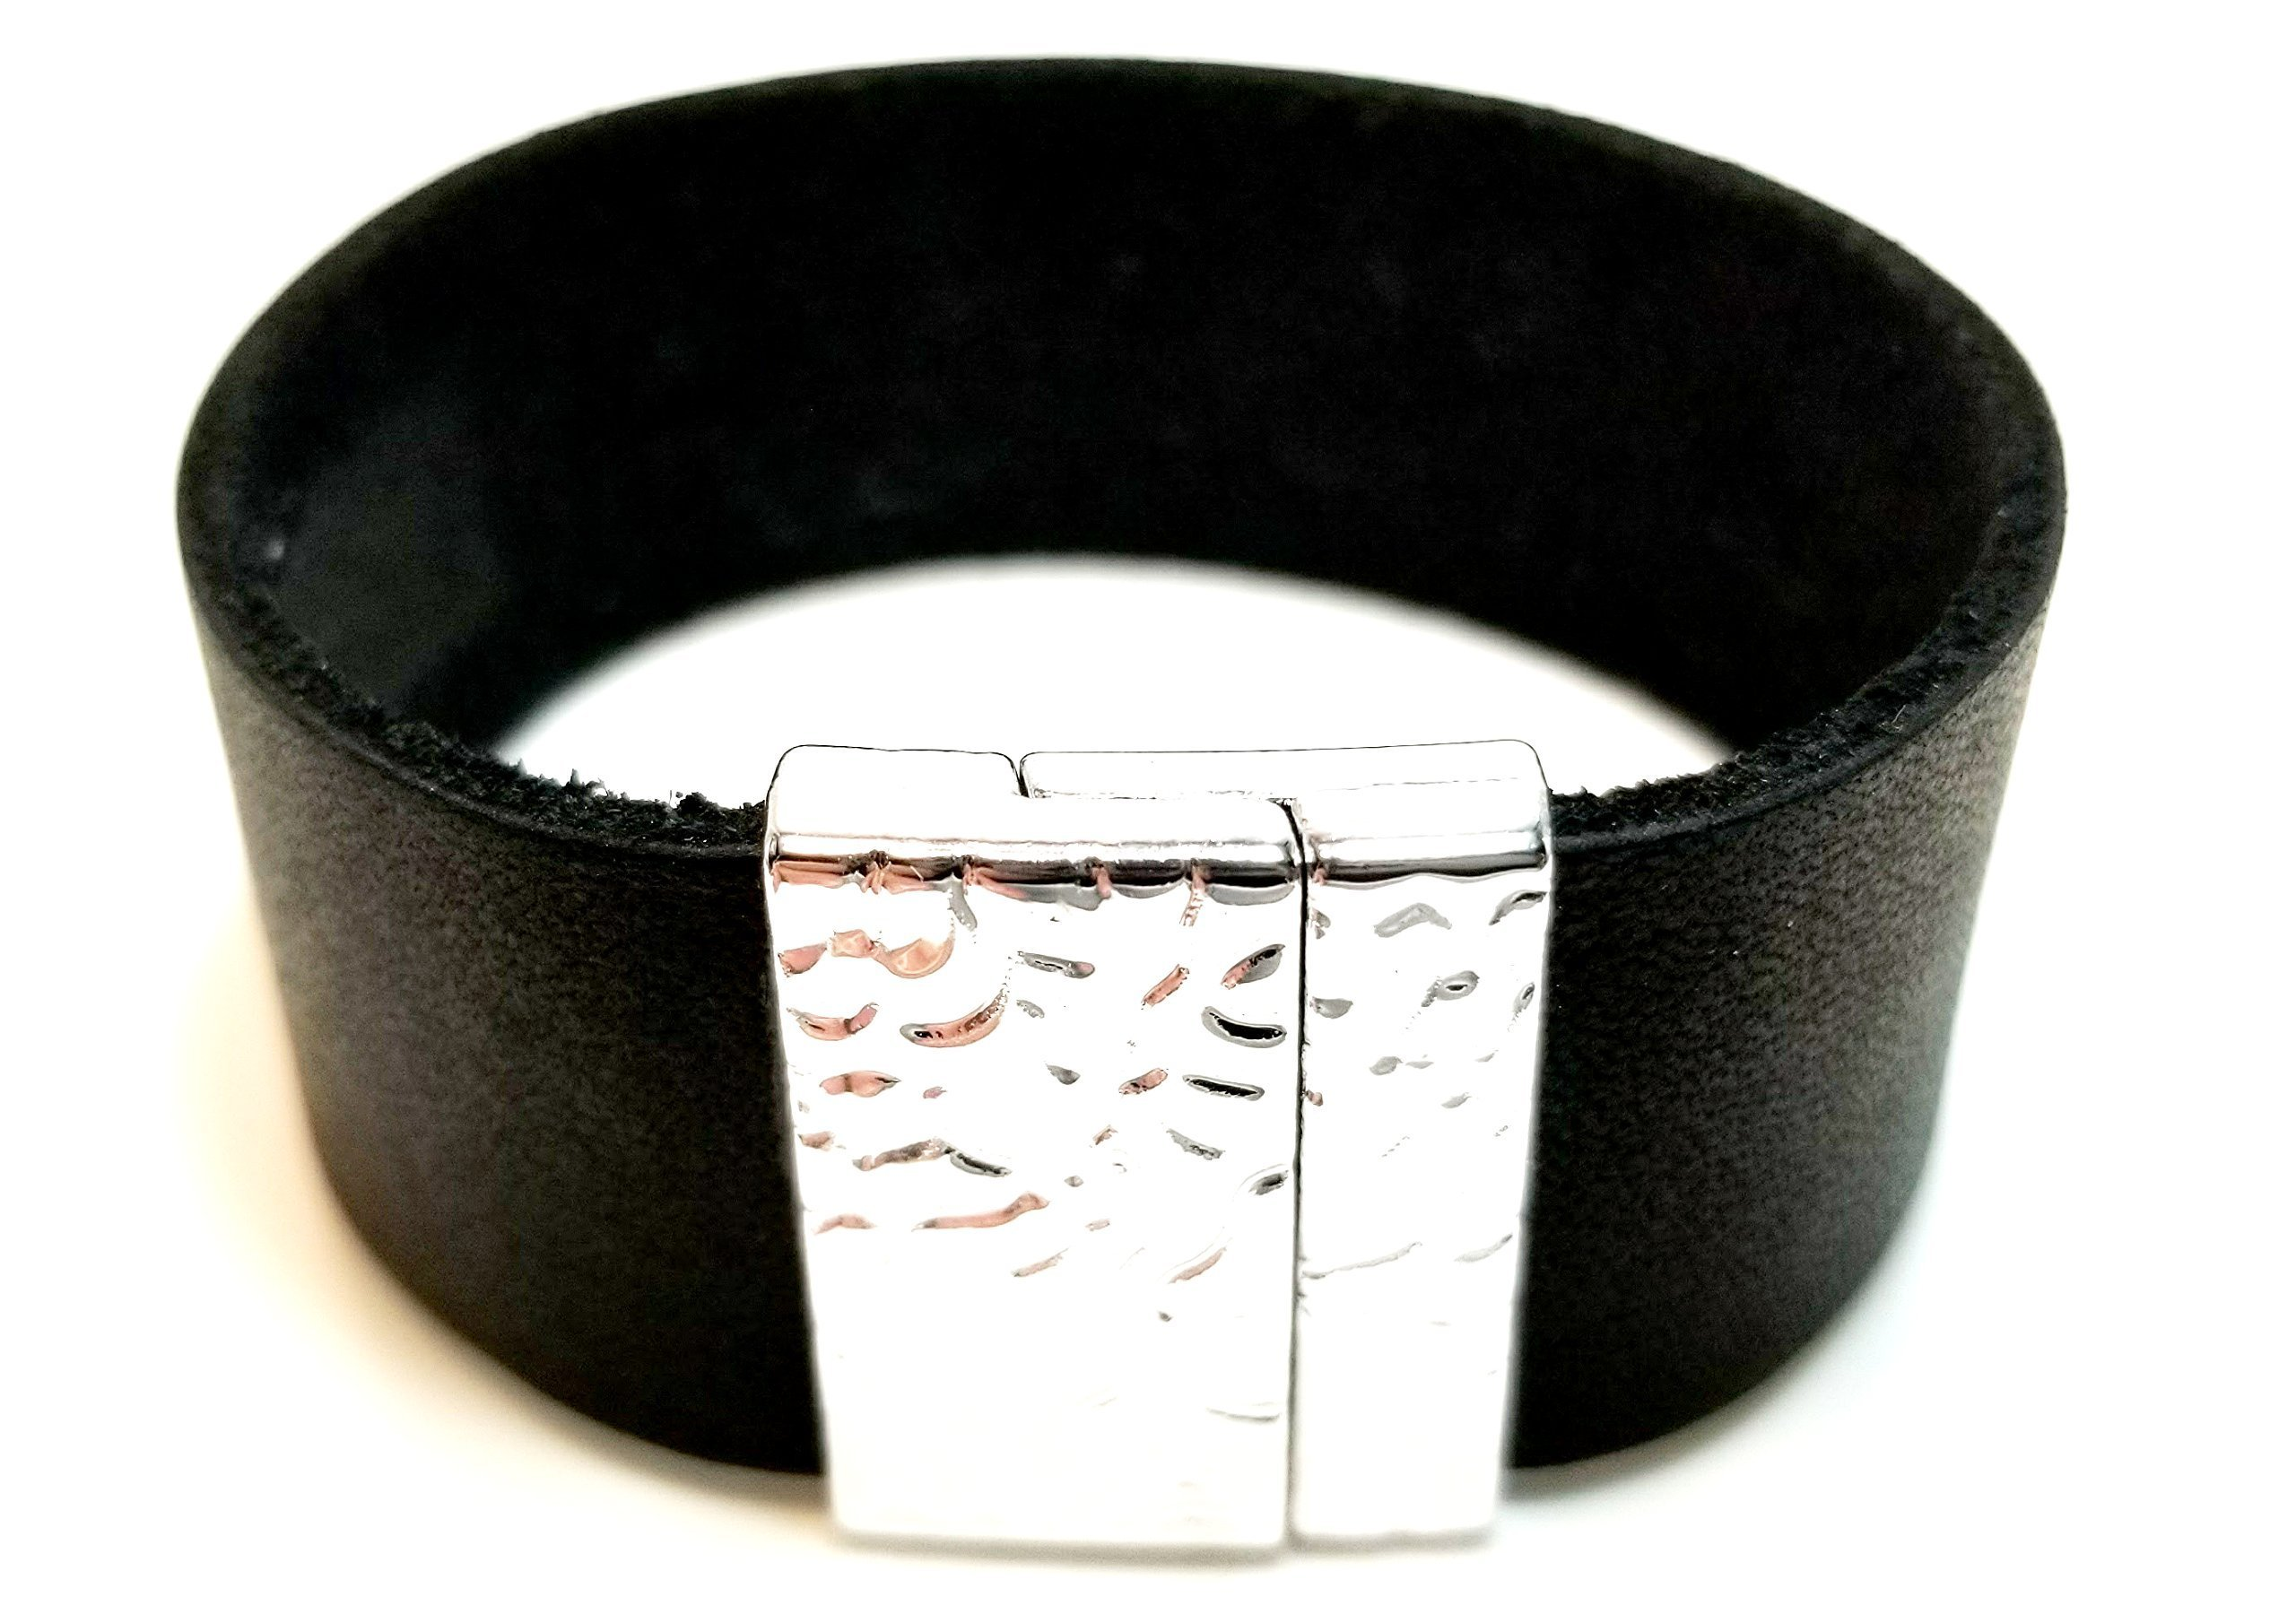 Christian Berkey Handmade Men's Bracelet - Leather Bracelet - Black by Christian Berkey Signature Accessories